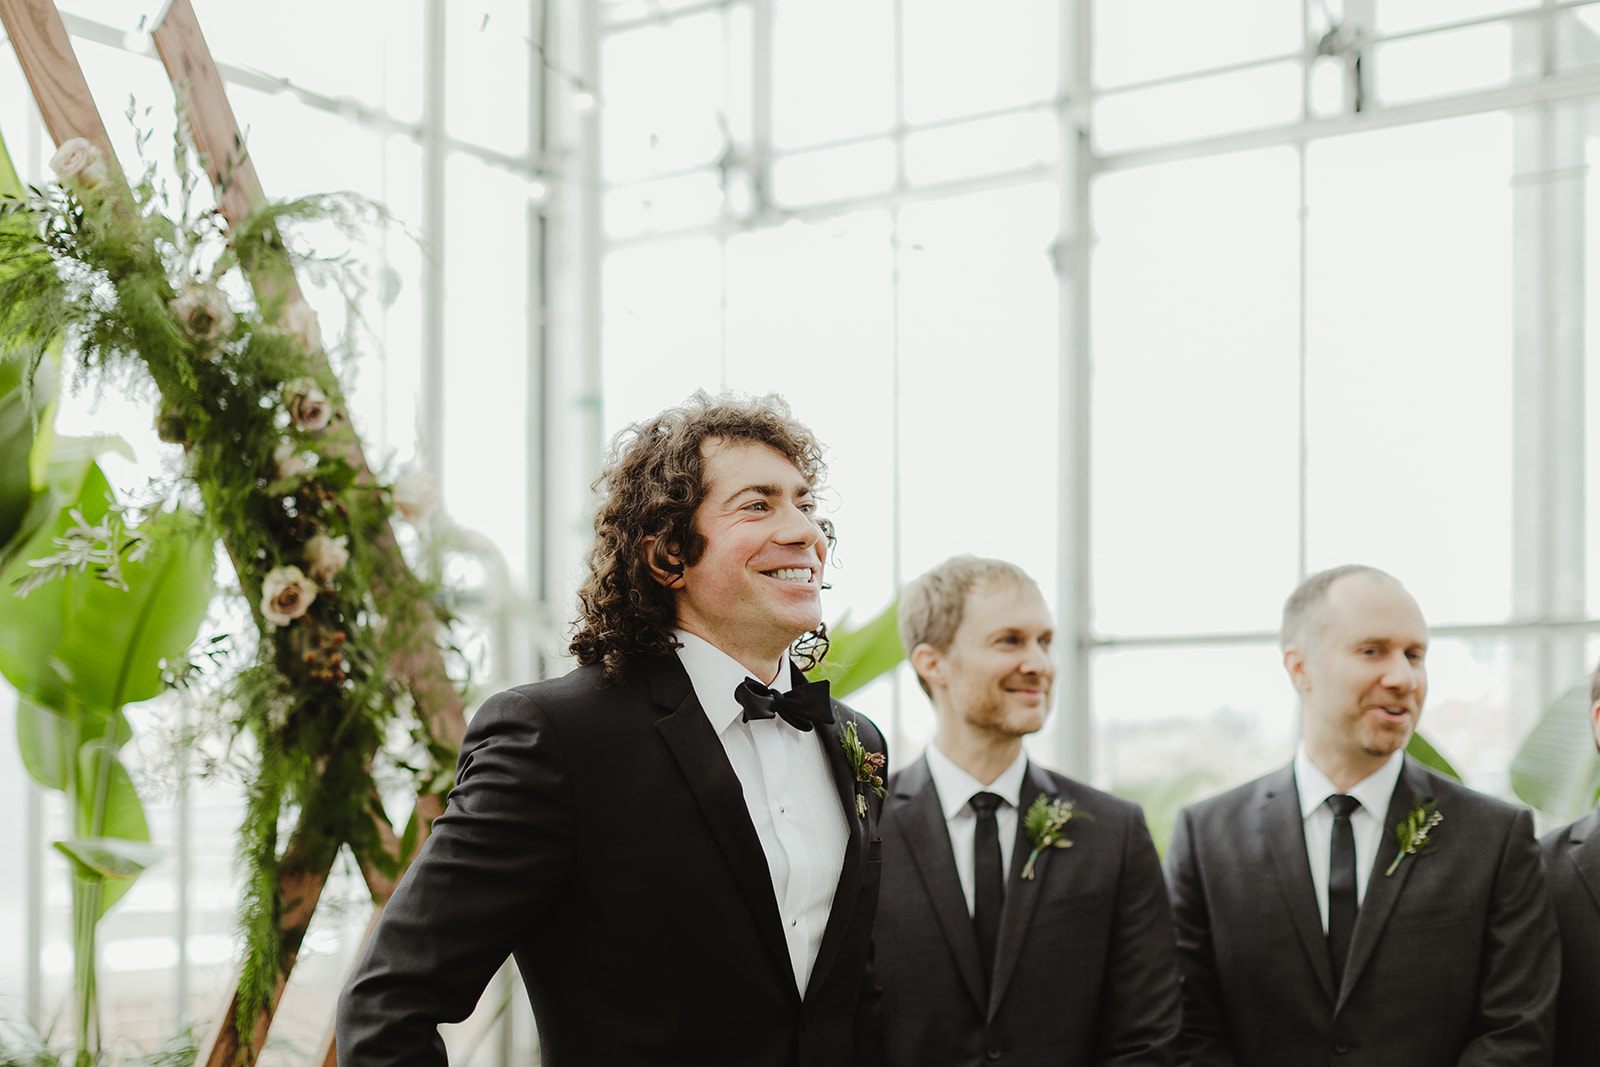 A groom smiling as his bride walks down the aisle